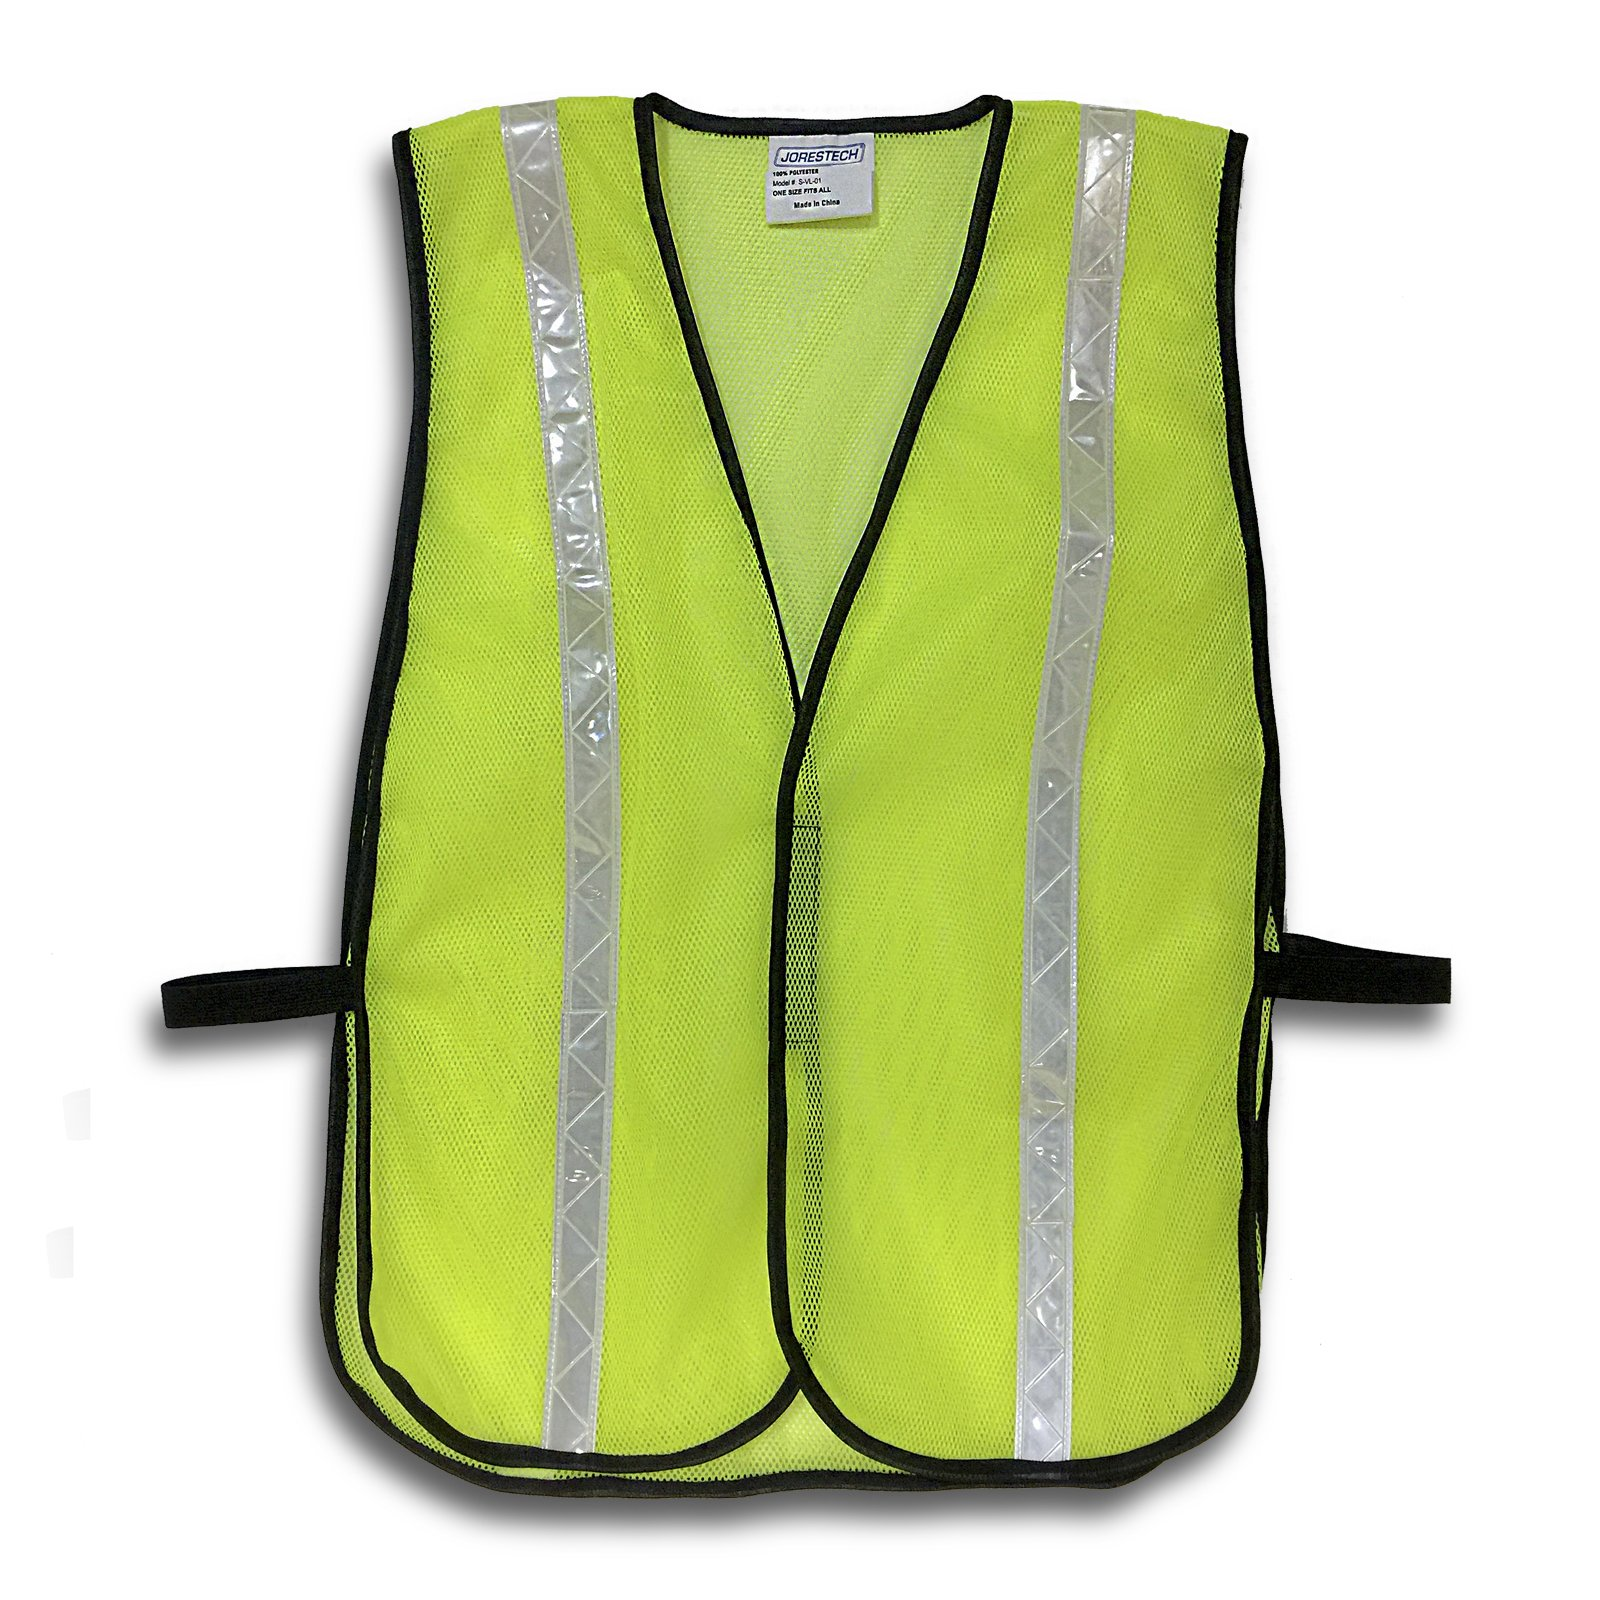 JORESTECH Emergency High visibility safety vest with reflective stripes (50 Vest, Yellow)